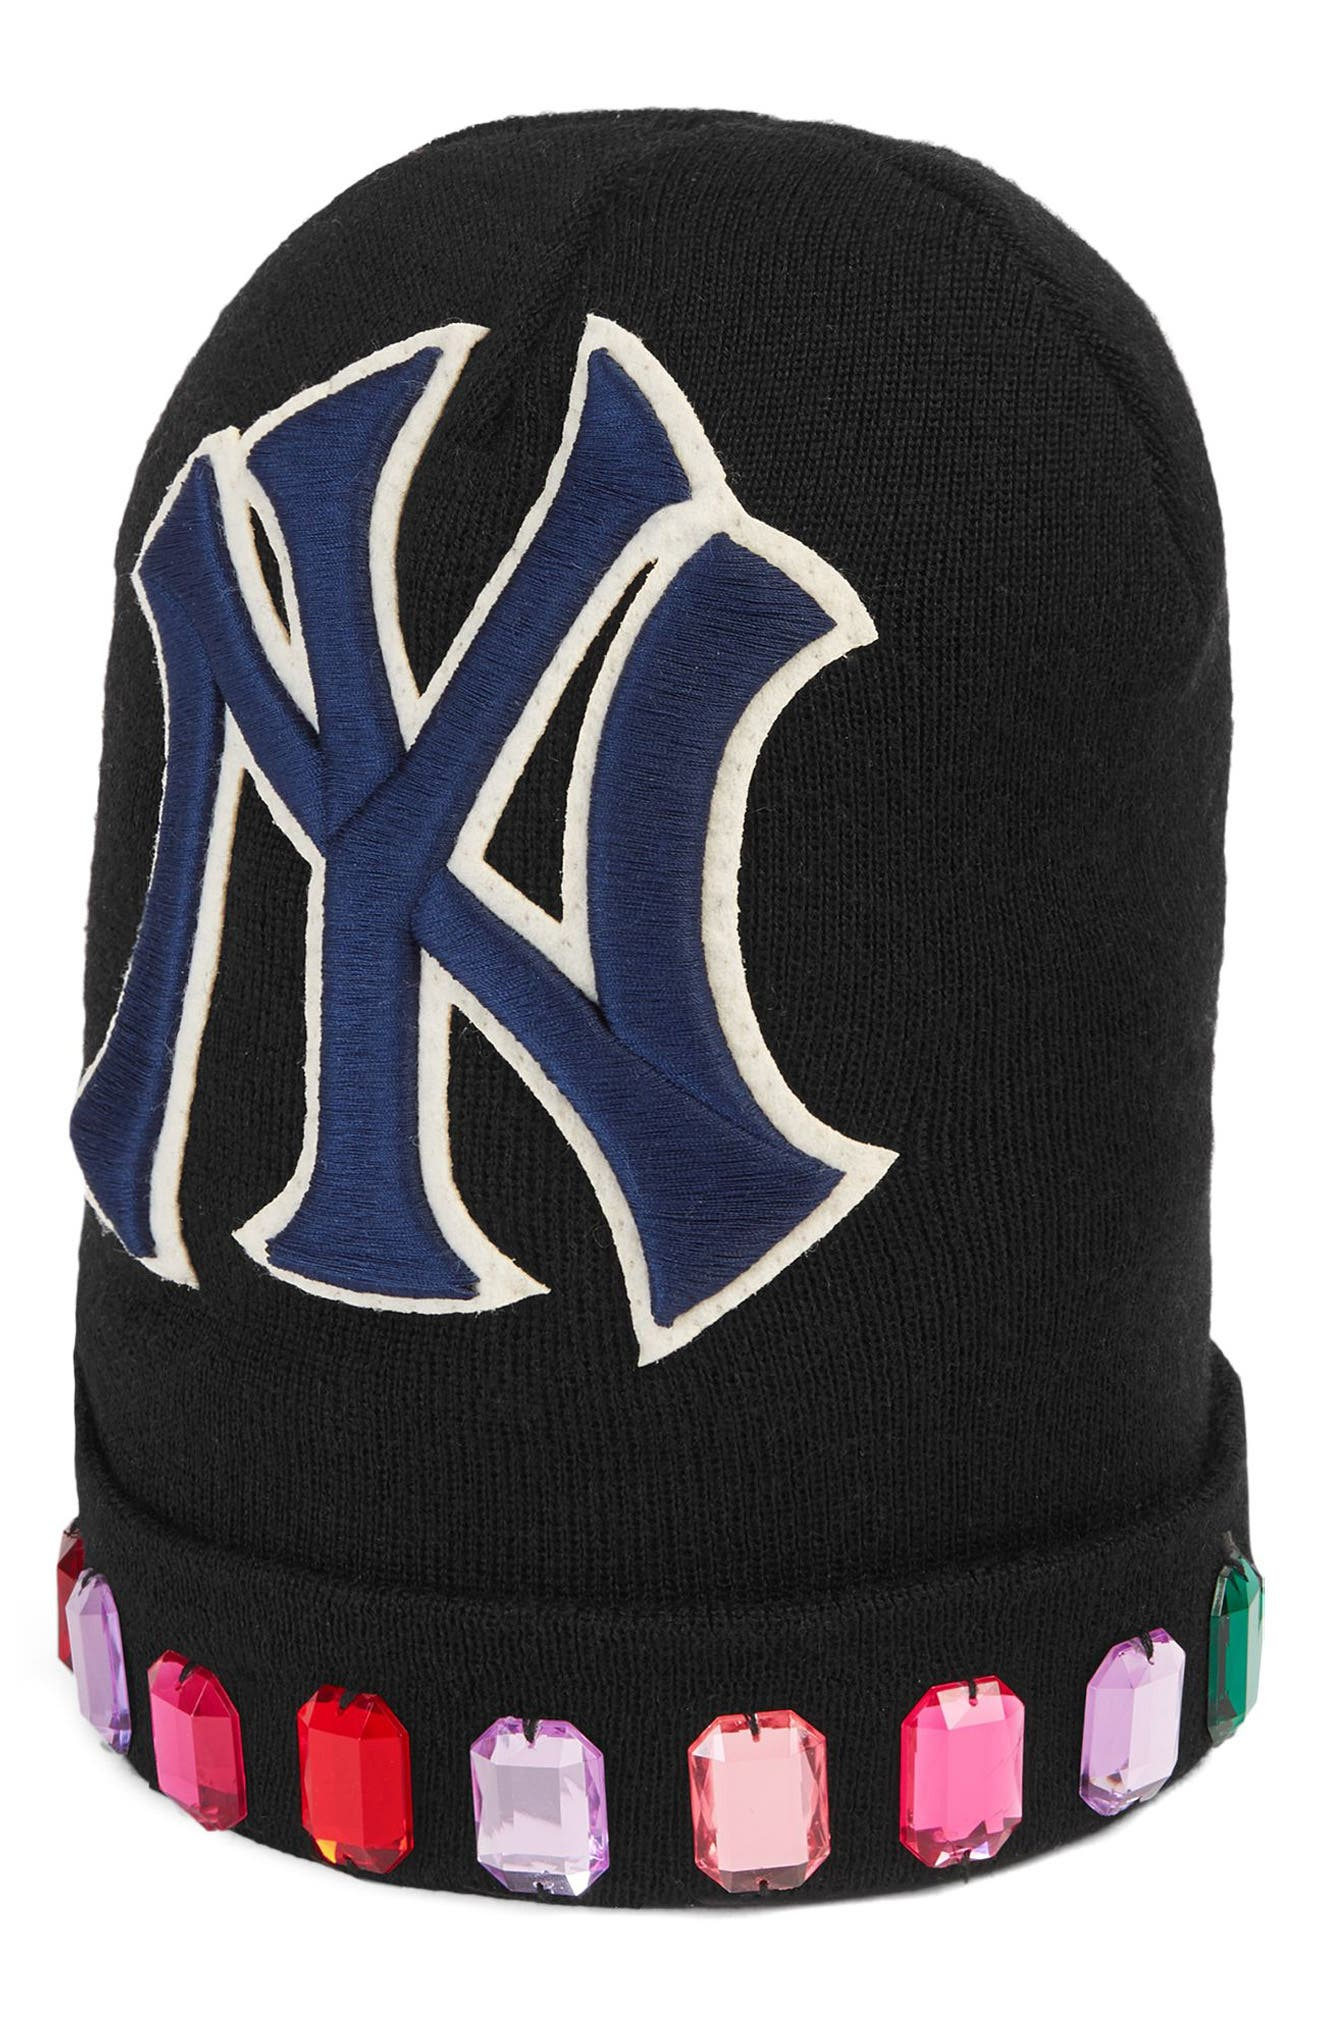 NY JEWEL WOOL KNIT CAP - BLACK